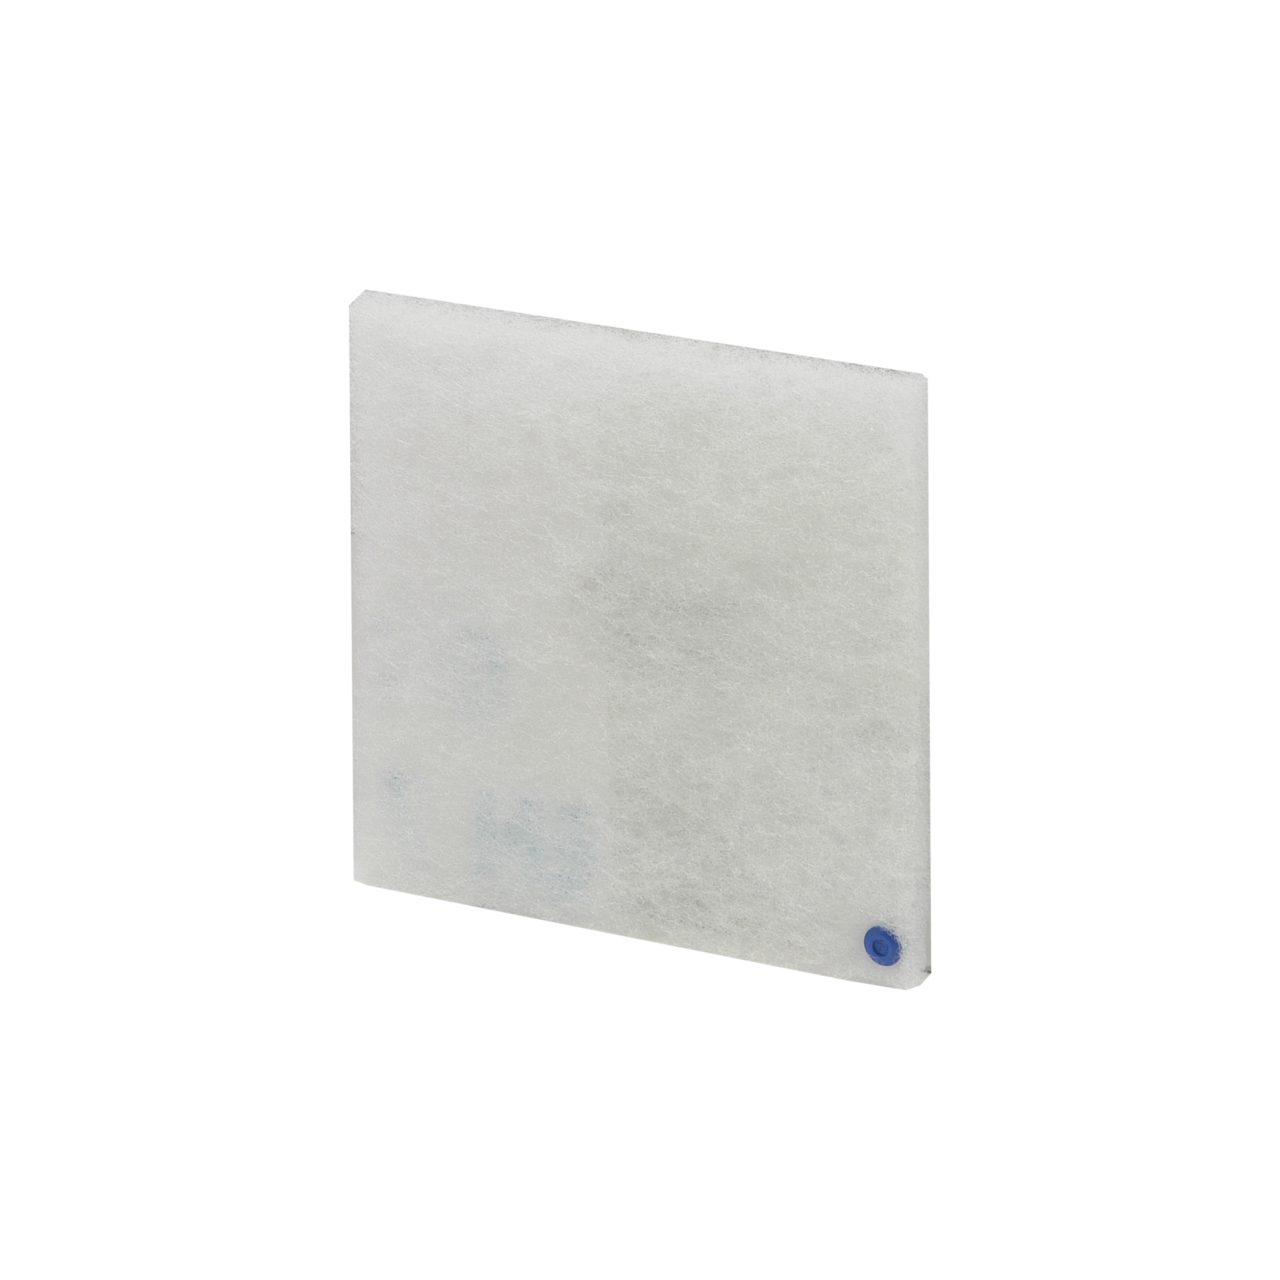 Image for Replacement filter for air filtered fan from Schroff - North America